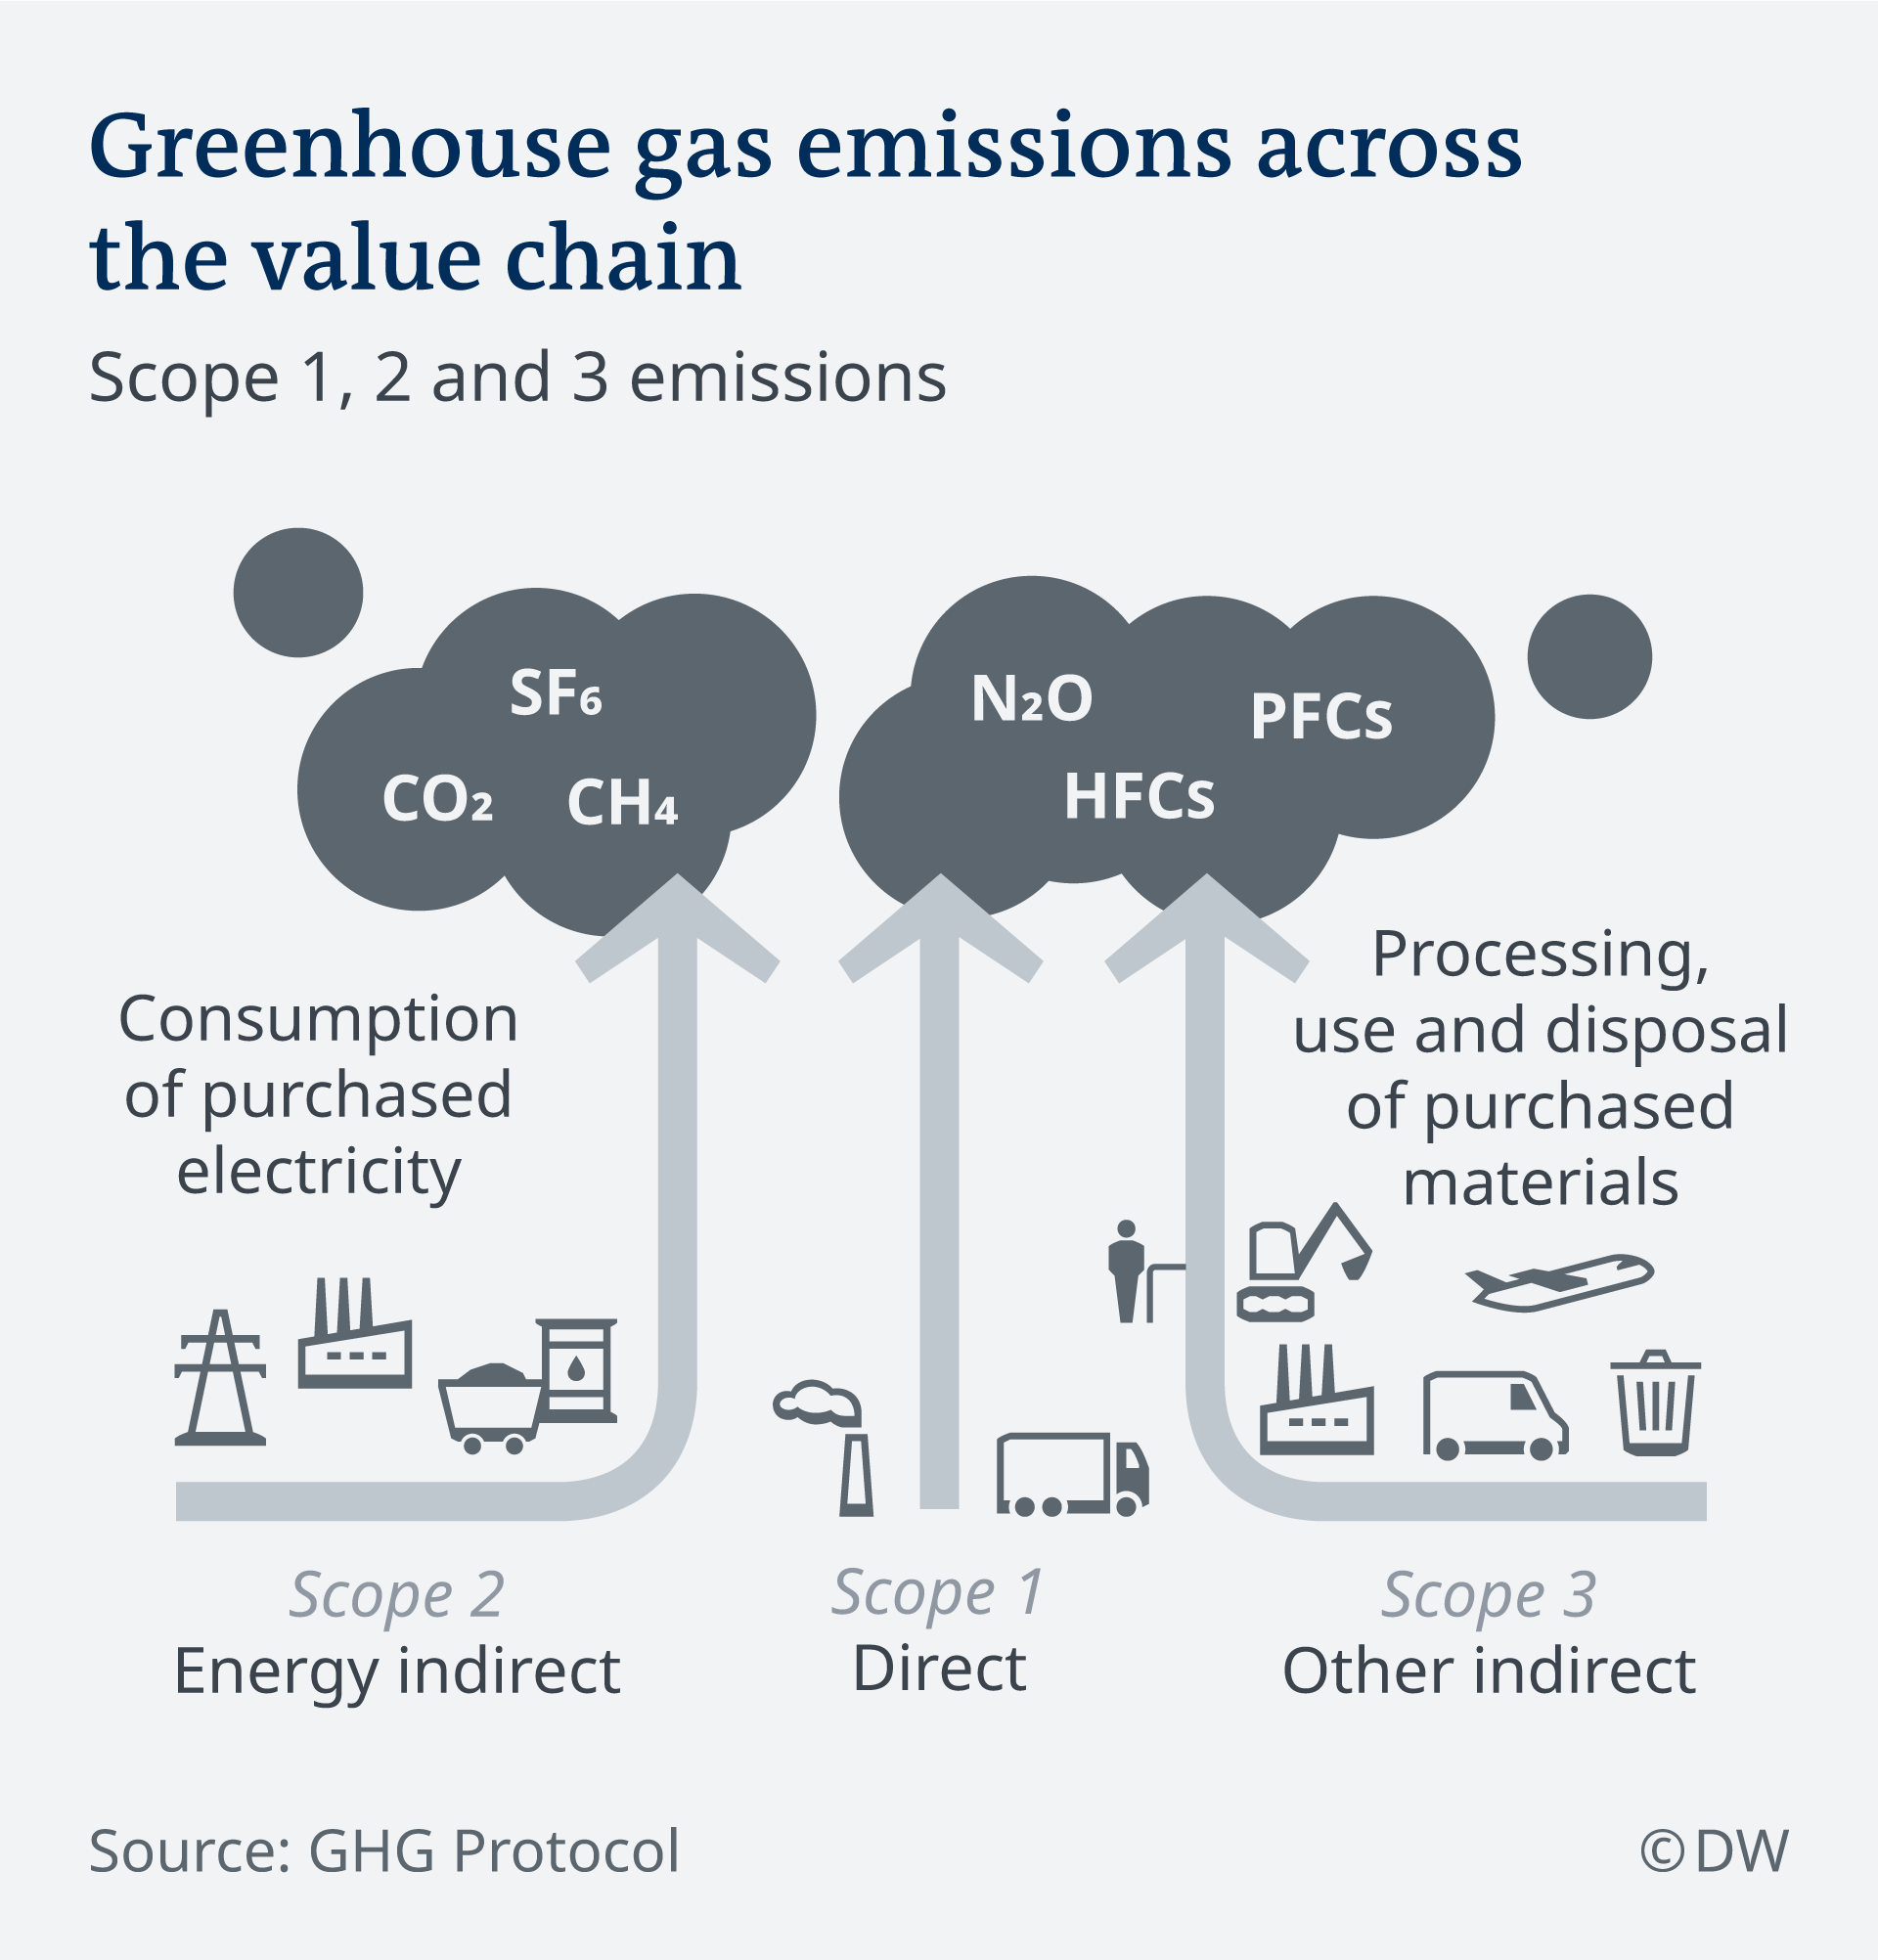 Greenhouse gas emissions across the value chain (DW)